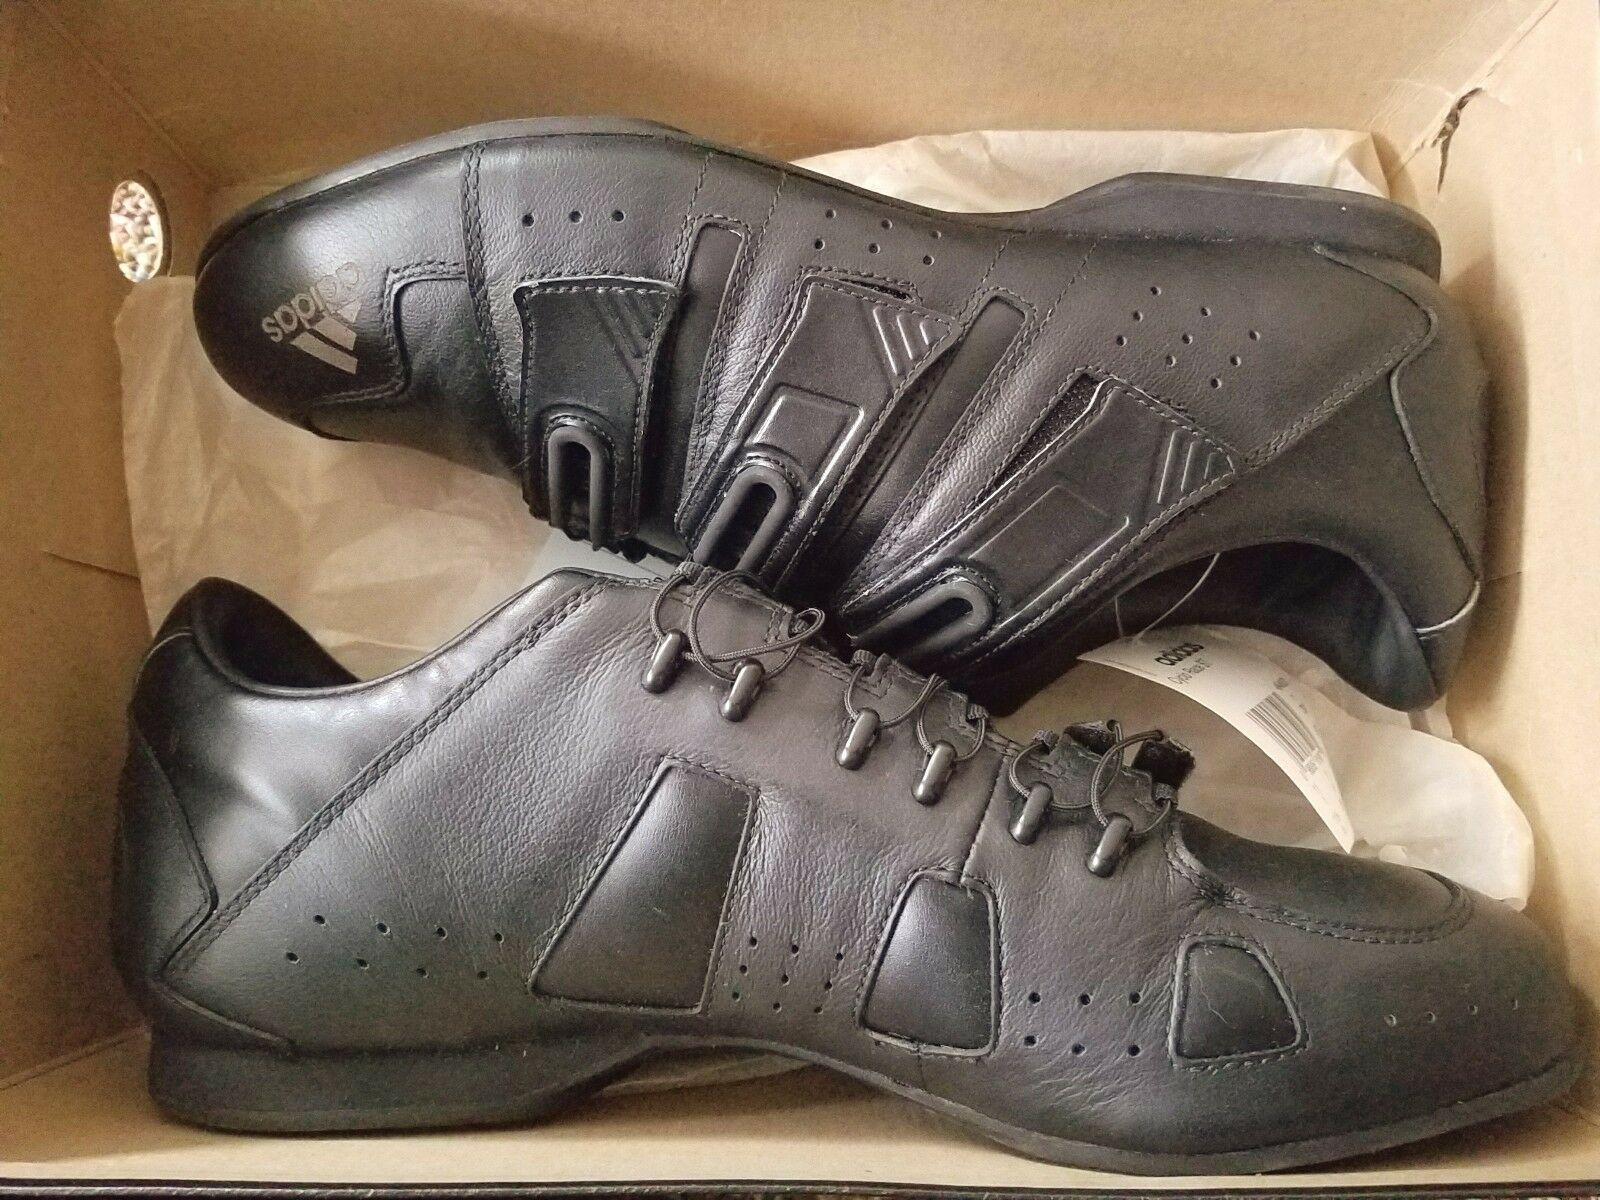 ADIDAS CYCLO RACE ST CYCLING STYLE ATHLETIC SHOES SIZE 11.5 BRAND NEW